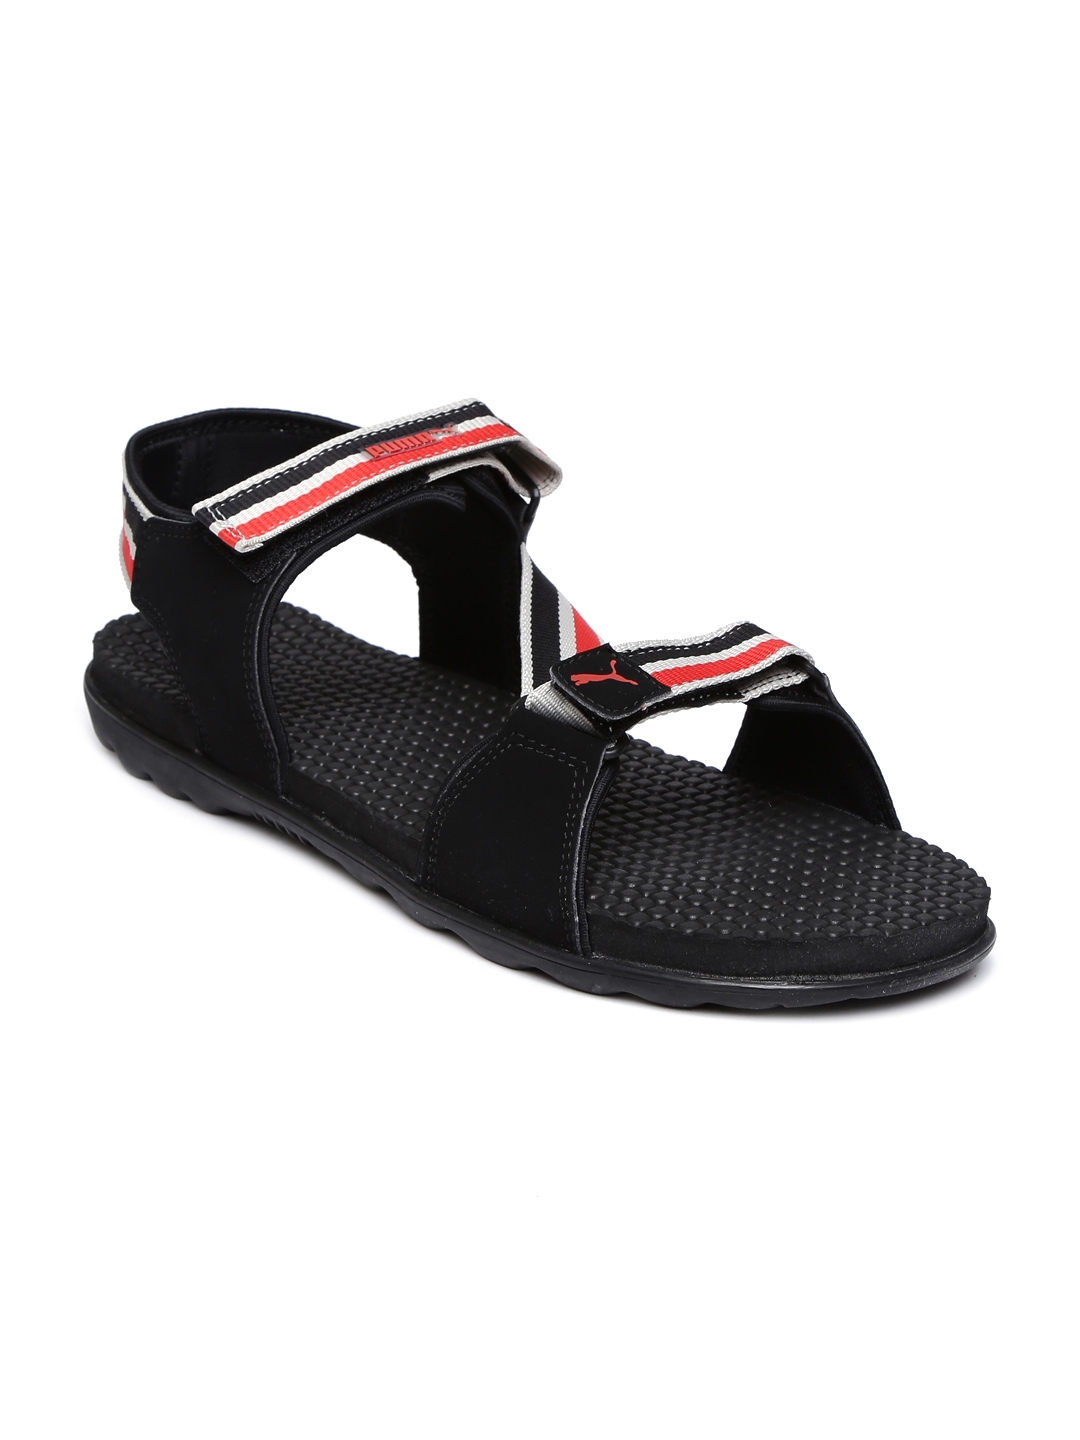 5abea567b09b4e Buy Puma Men Black   Red Striped Silicis Mesh IDP Sports Sandals - Sandals  for Men 1415459